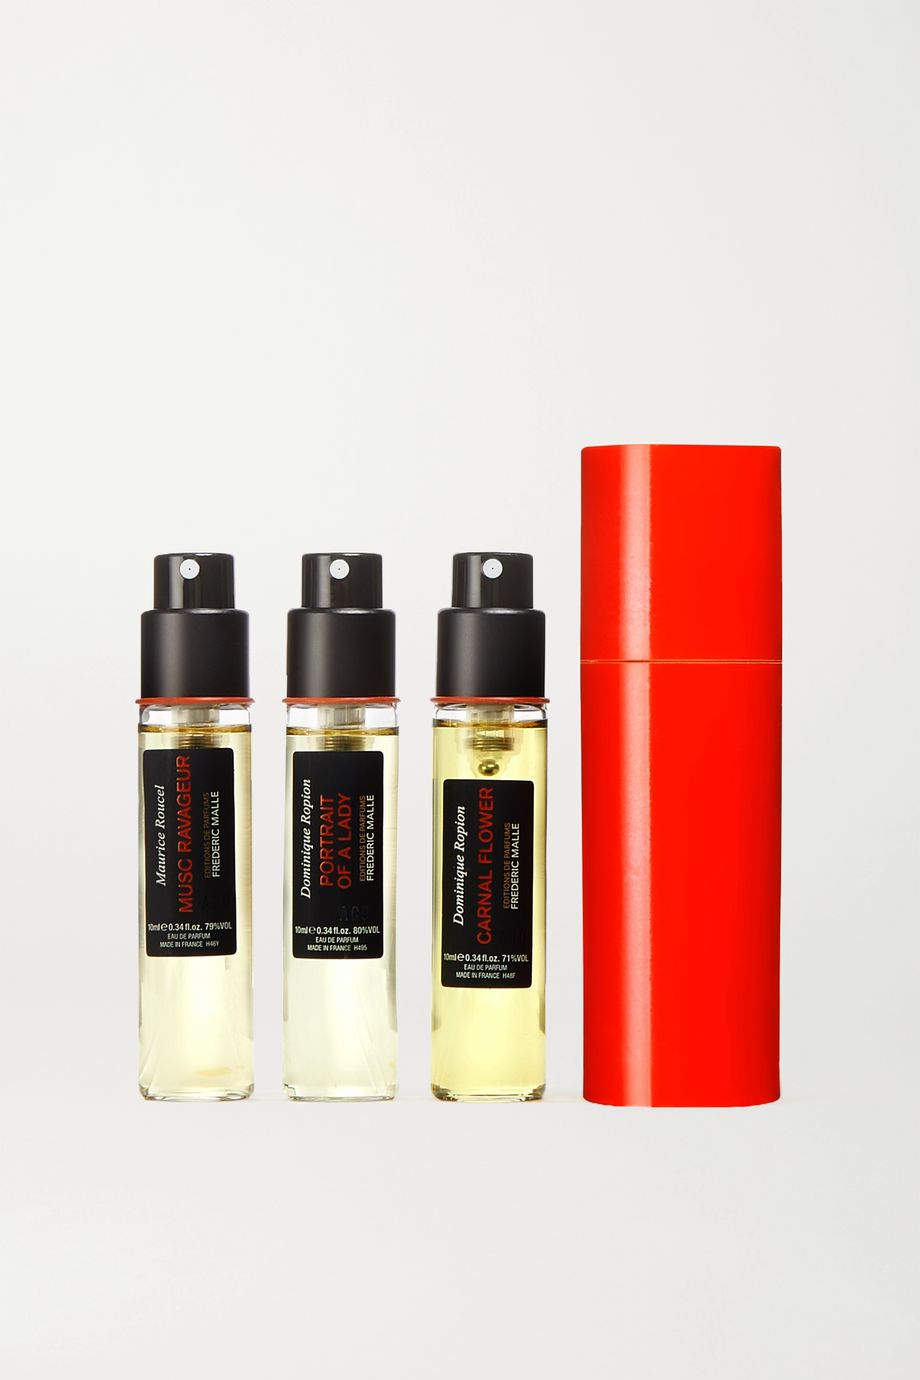 Frederic Malle Discovery Set, 3 x 10ml